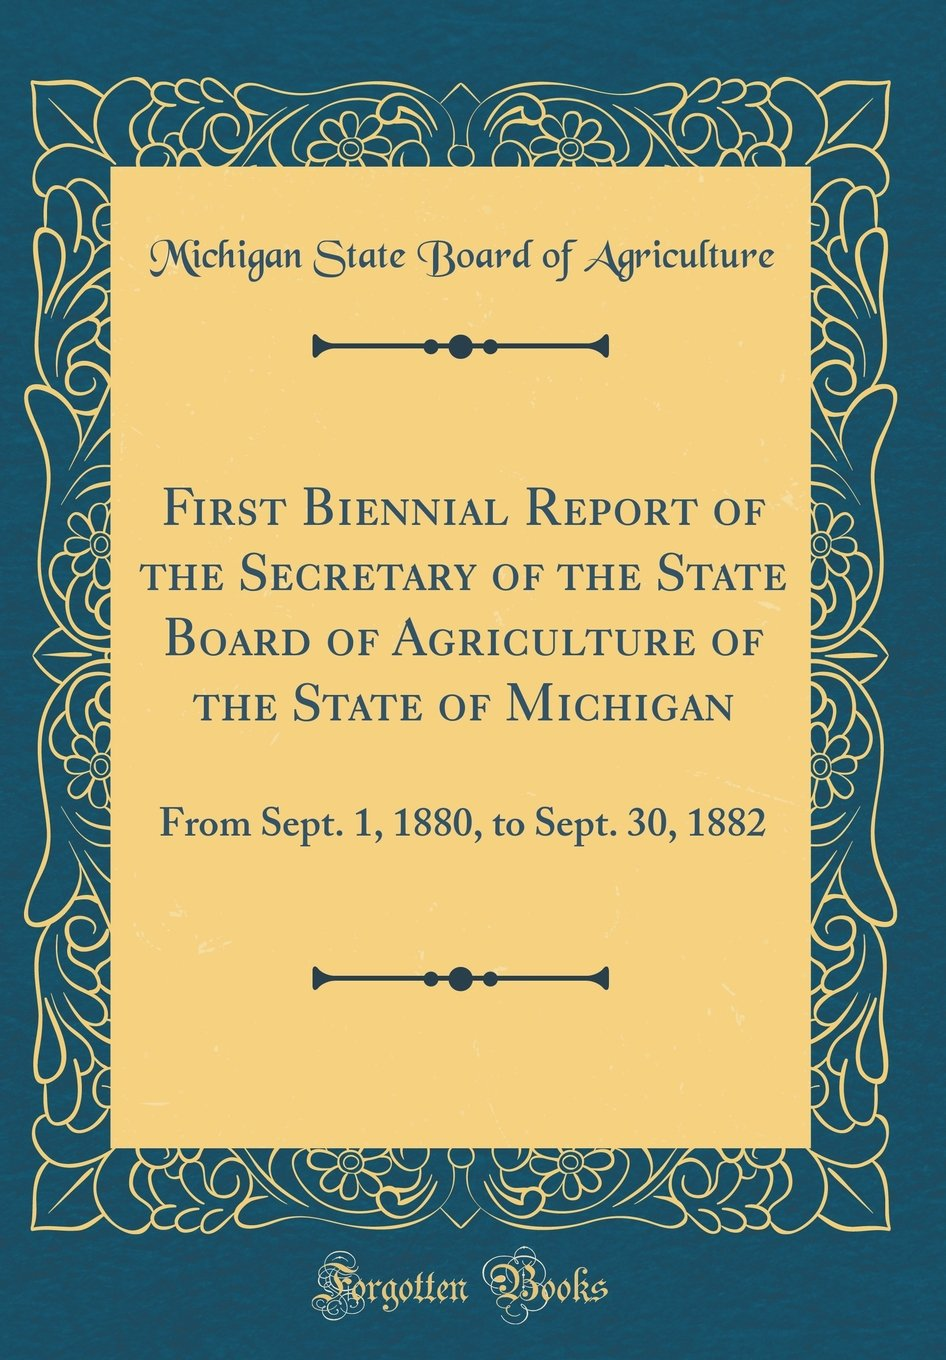 First Biennial Report of the Secretary of the State Board of Agriculture of the State of Michigan: From Sept. 1, 1880, to Sept. 30, 1882 (Classic Reprint) pdf